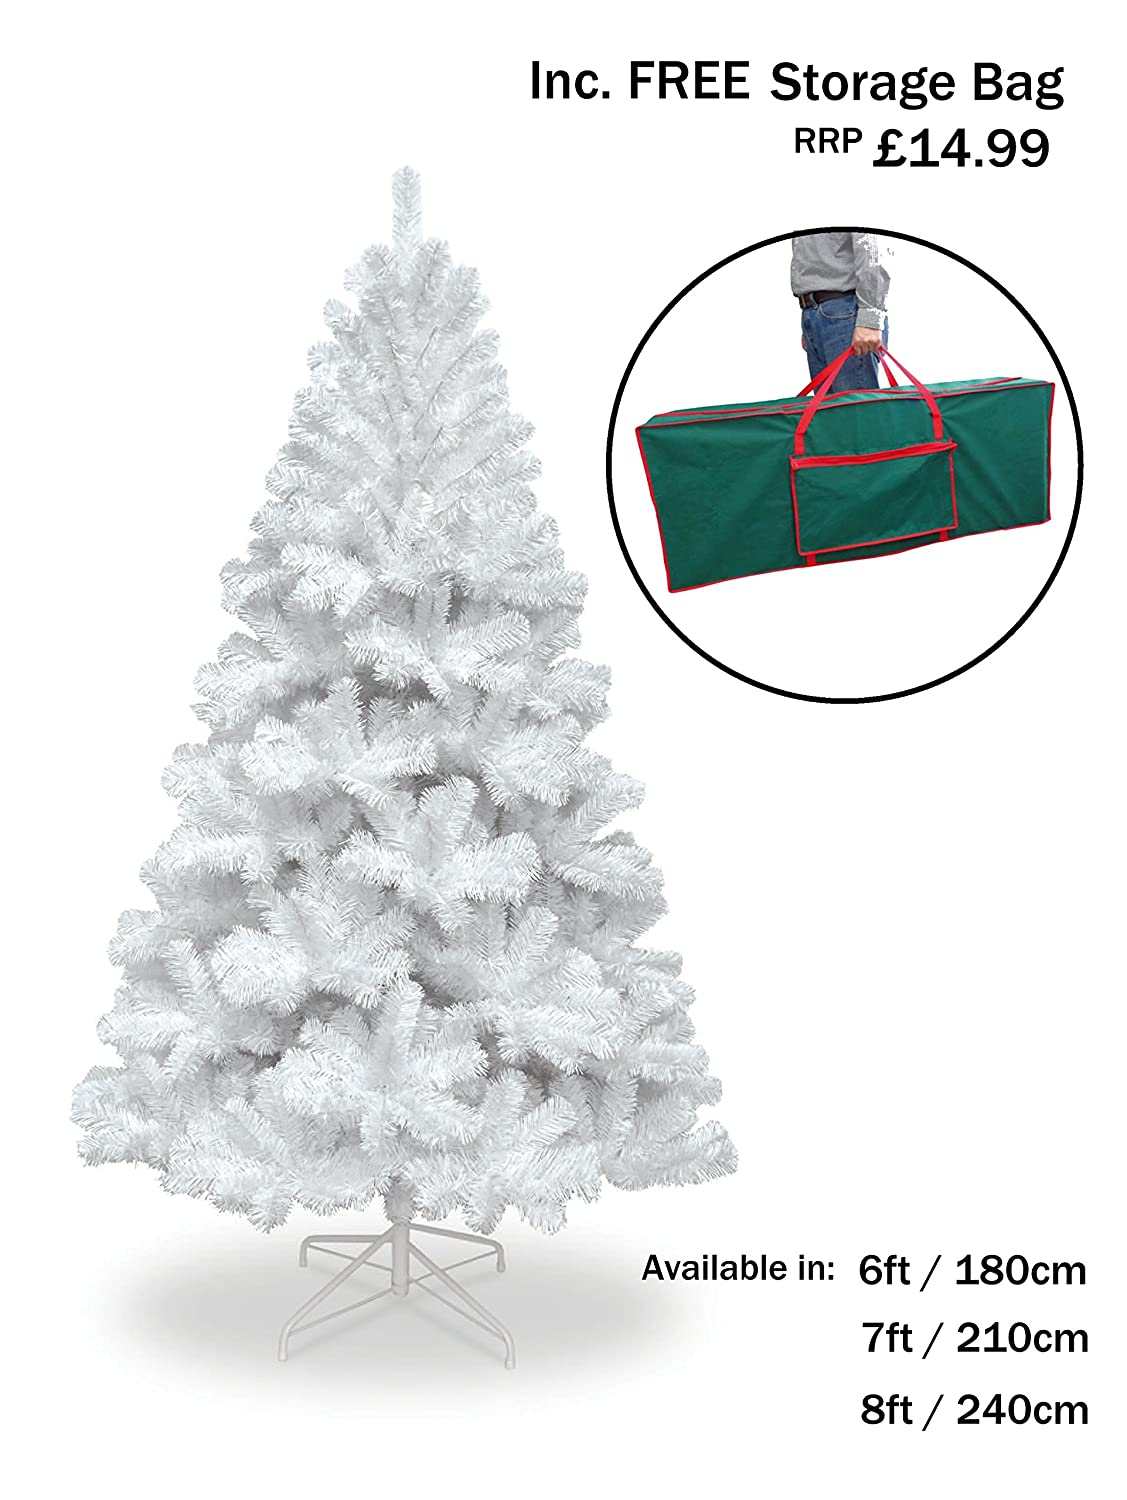 Snowtime 6FT COLORADO SPRUCE WHITE CHRISTMAS TREE WITH 483 TIPS INC FREE STORAGE BAG WORTH £14.99!! CT06362